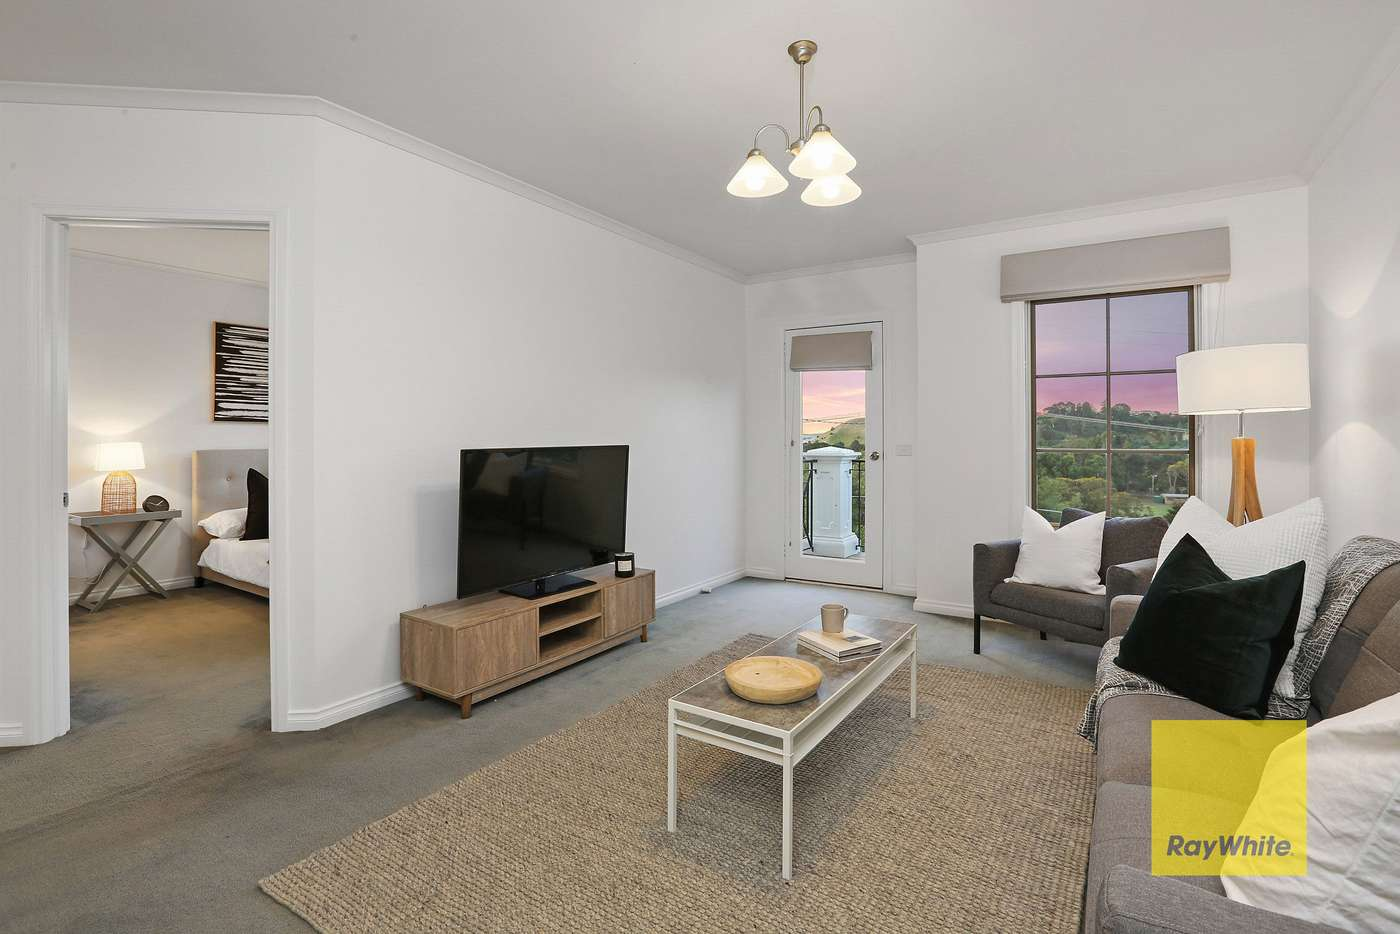 Sixth view of Homely house listing, 33 Queens Park Road, Highton VIC 3216